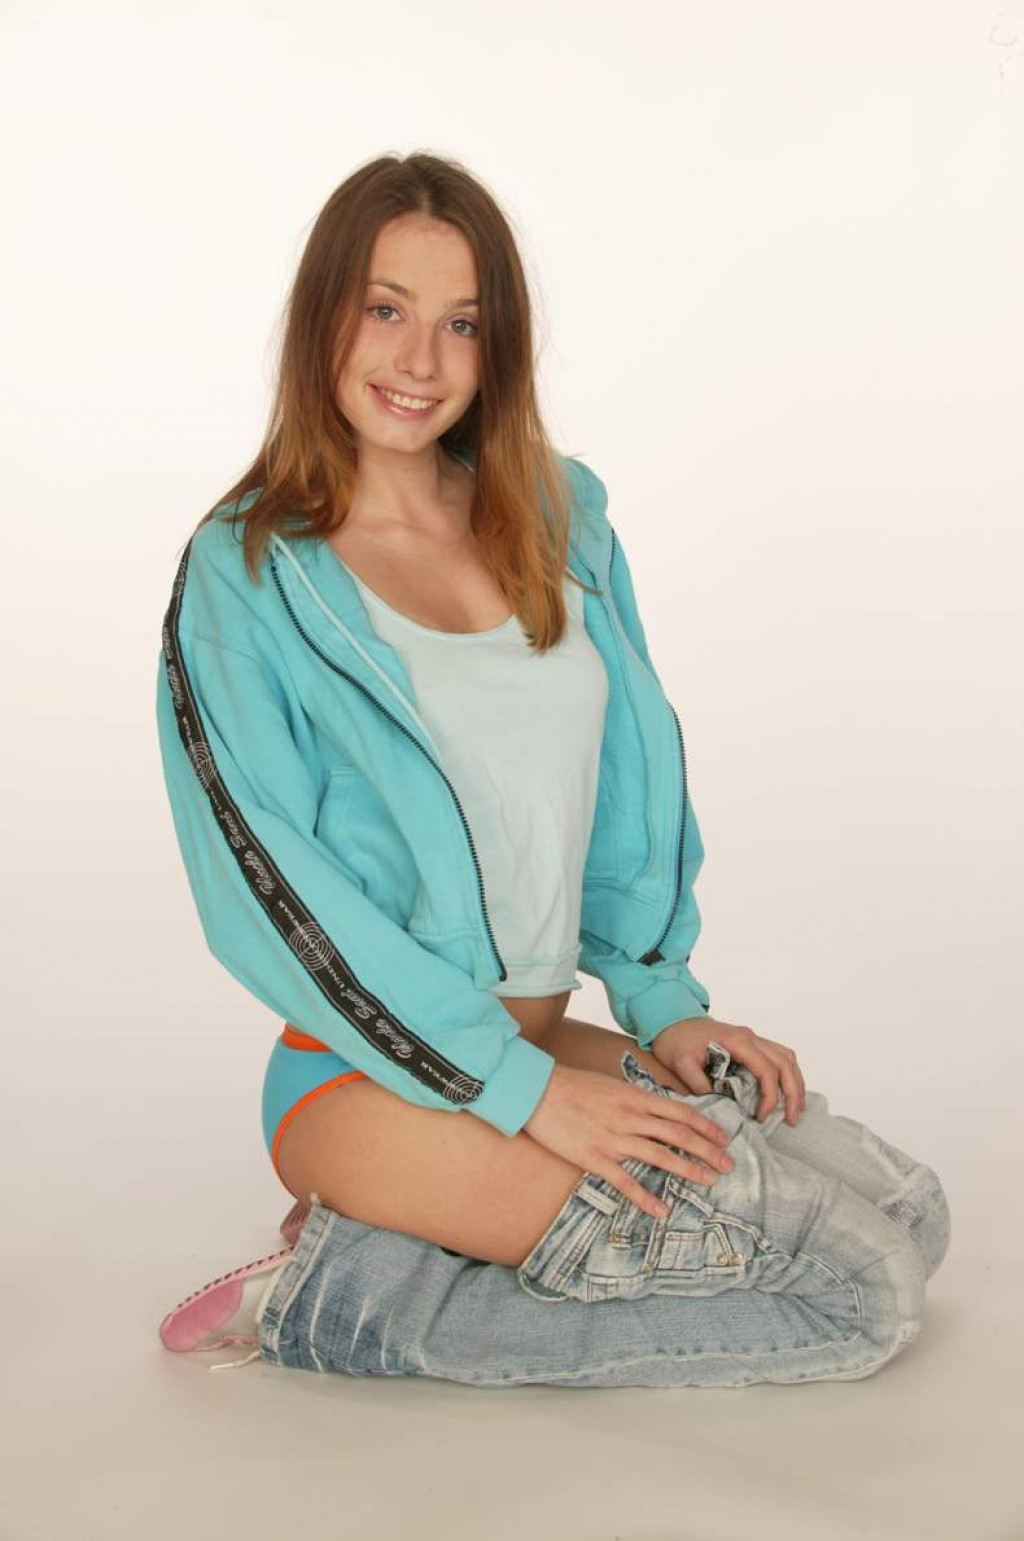 Pictures Erotic Teens More Join 31